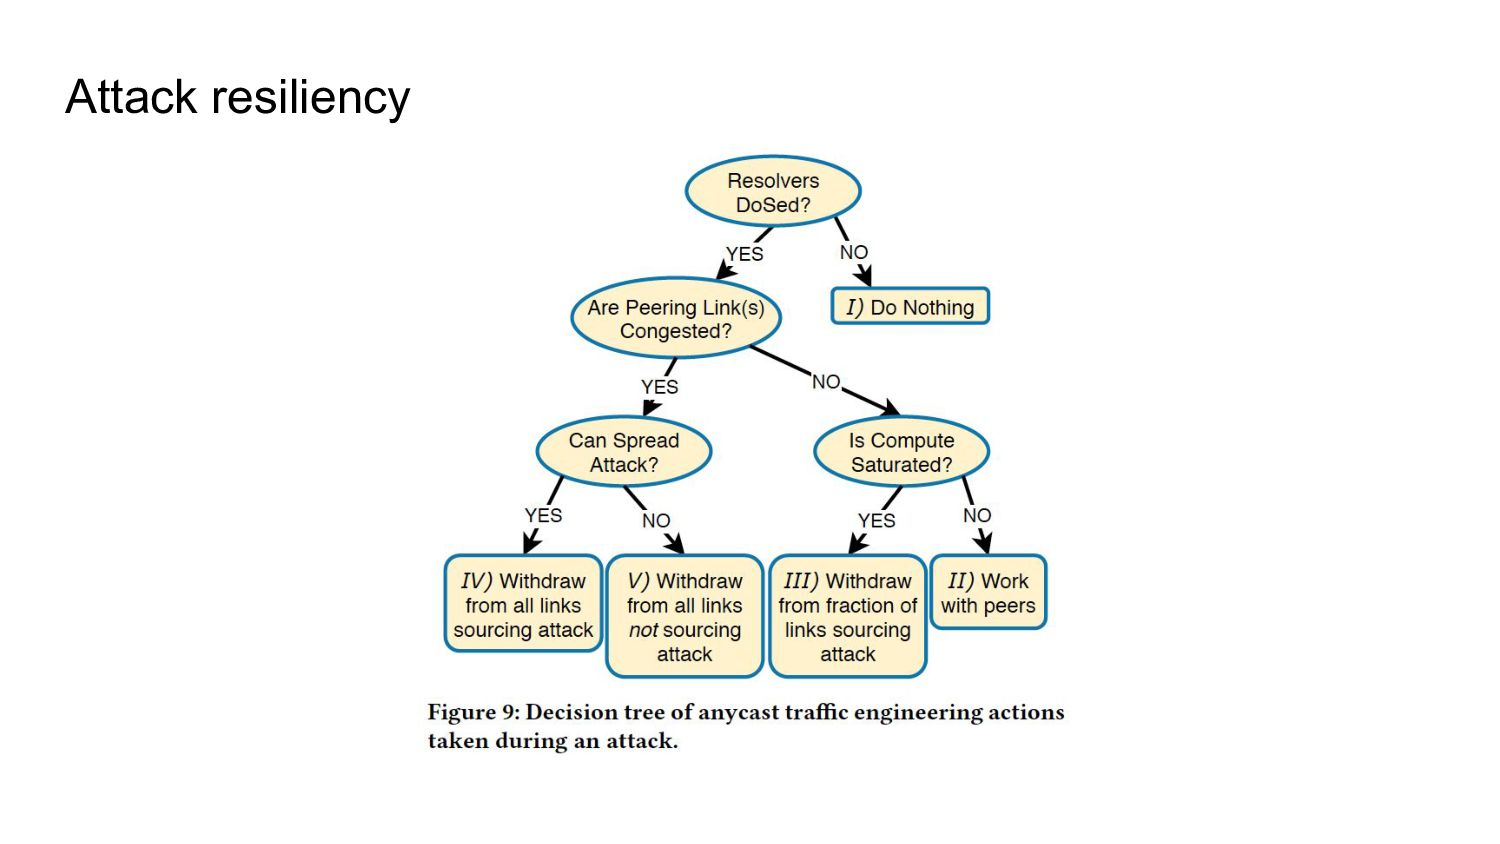 Attack resiliency